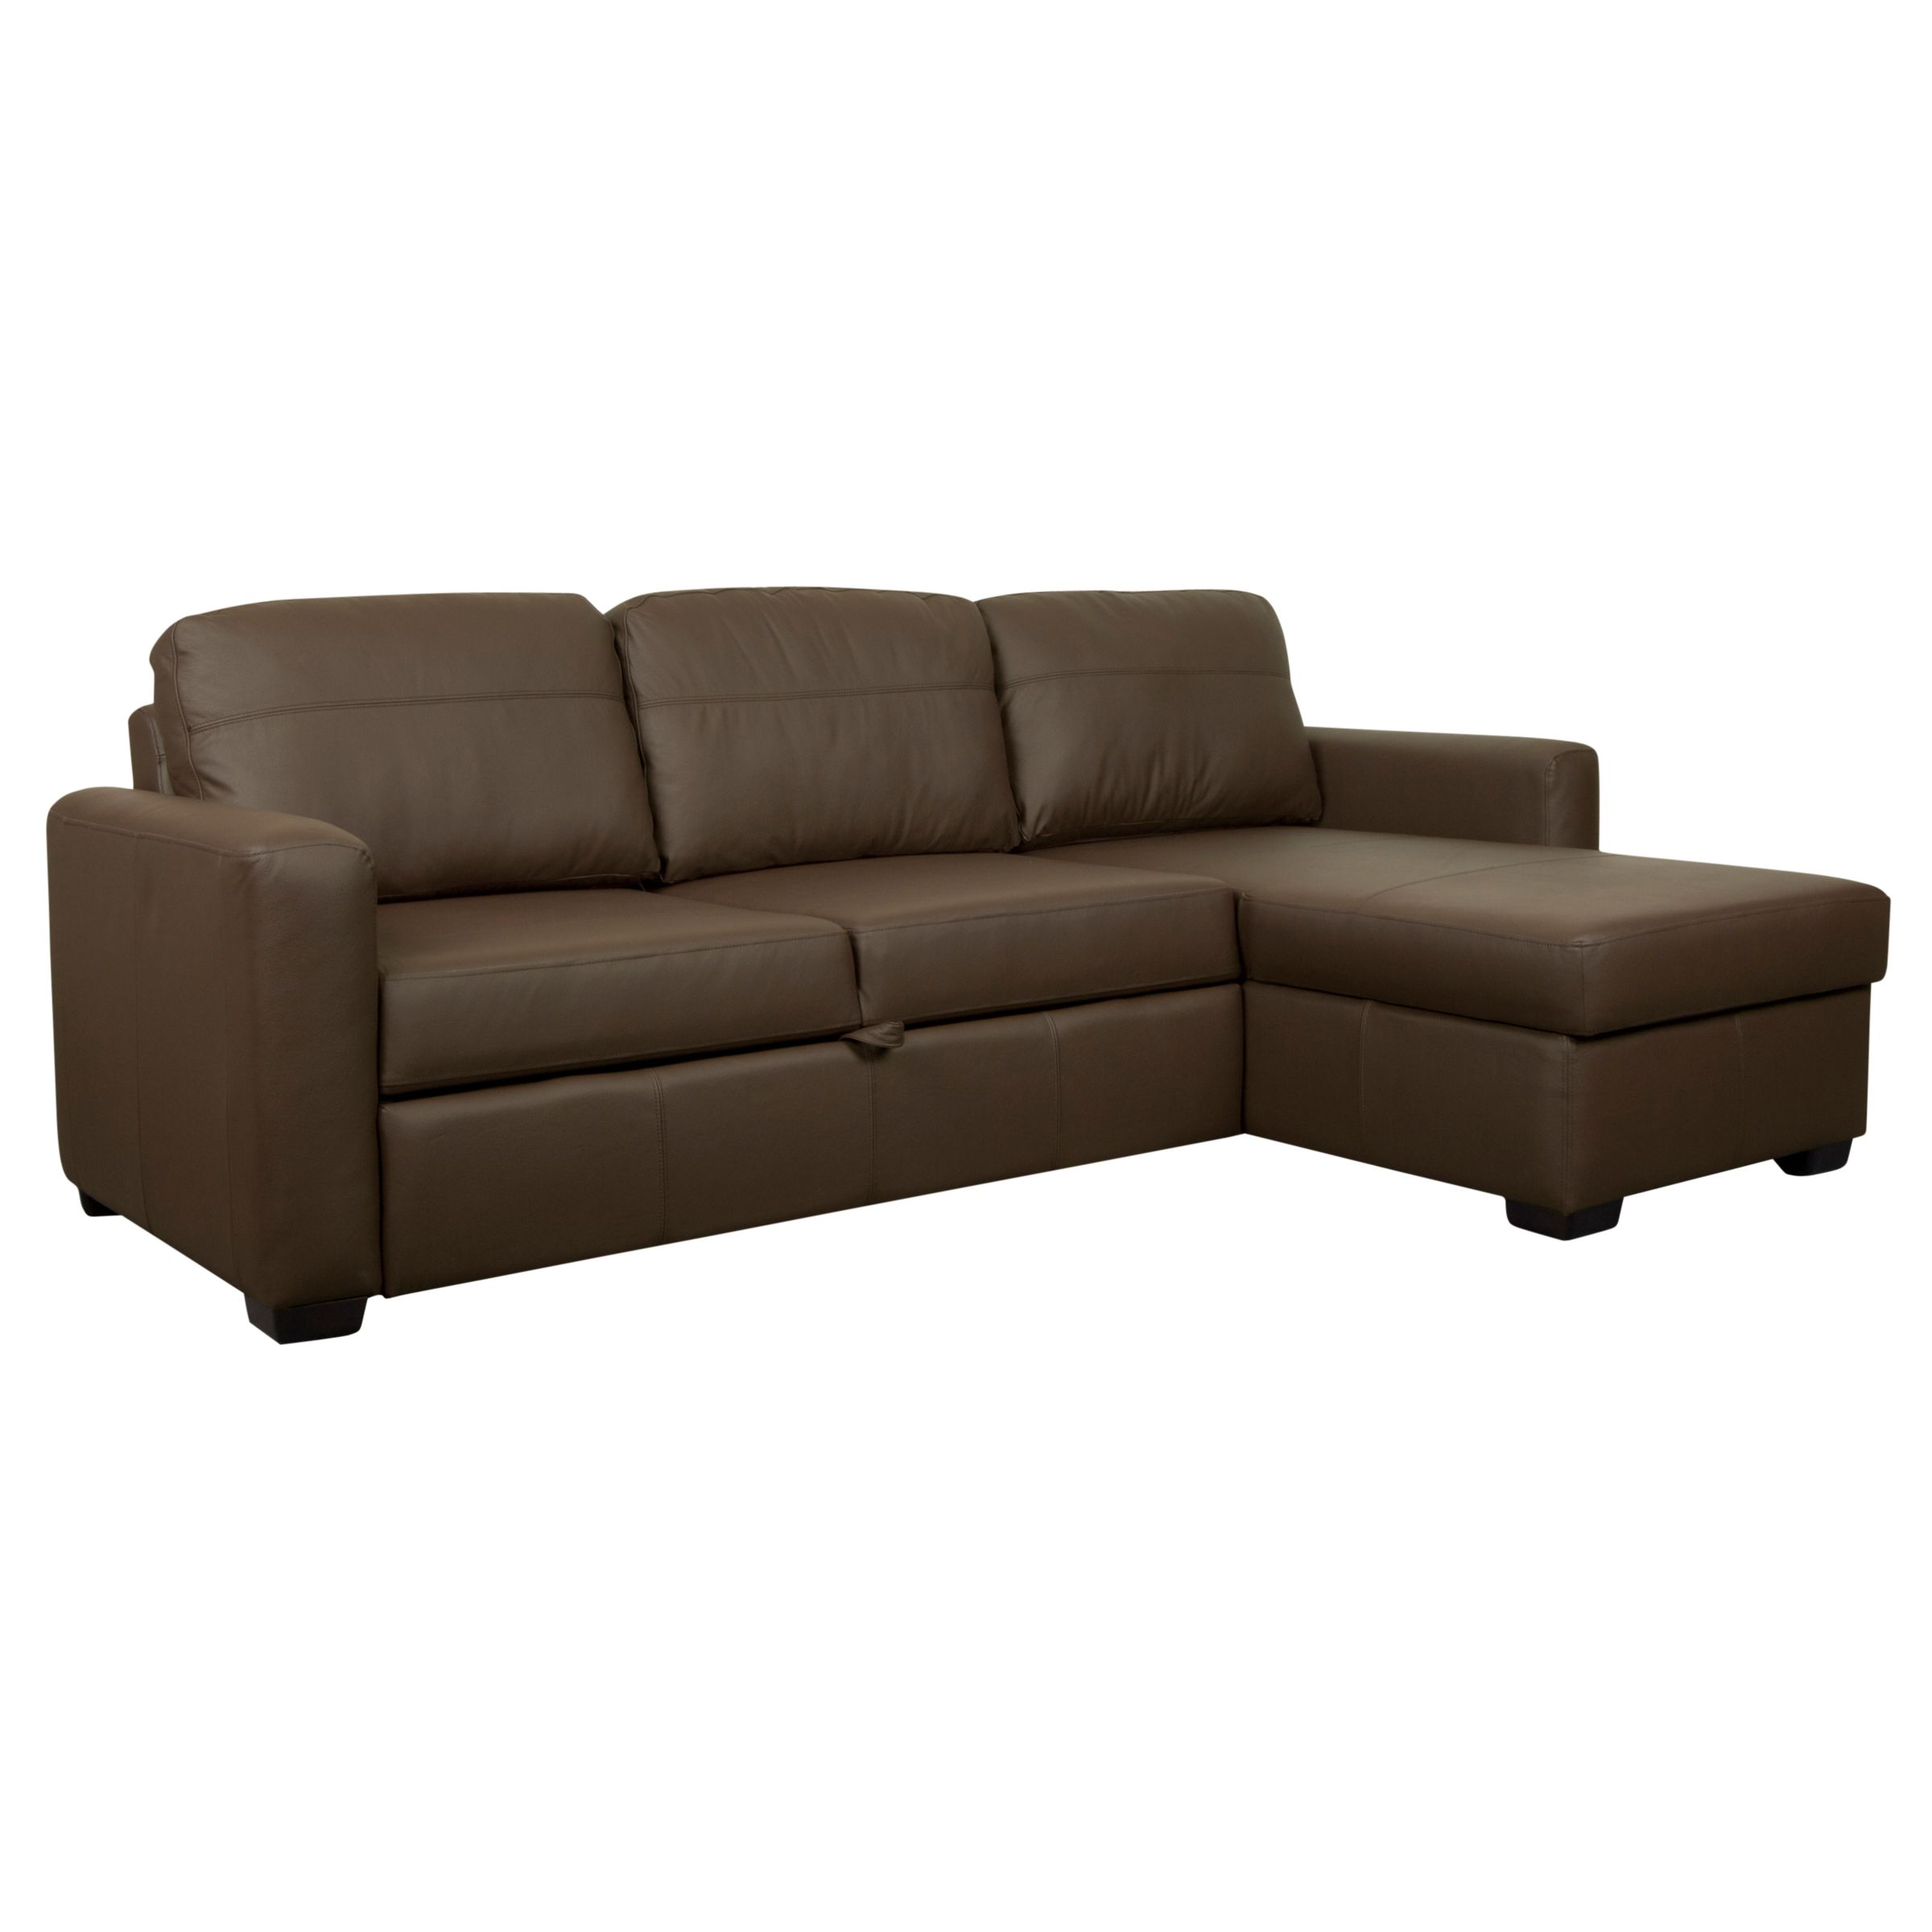 sofa foam online large rustic sectional john lewis leather bed brokeasshome